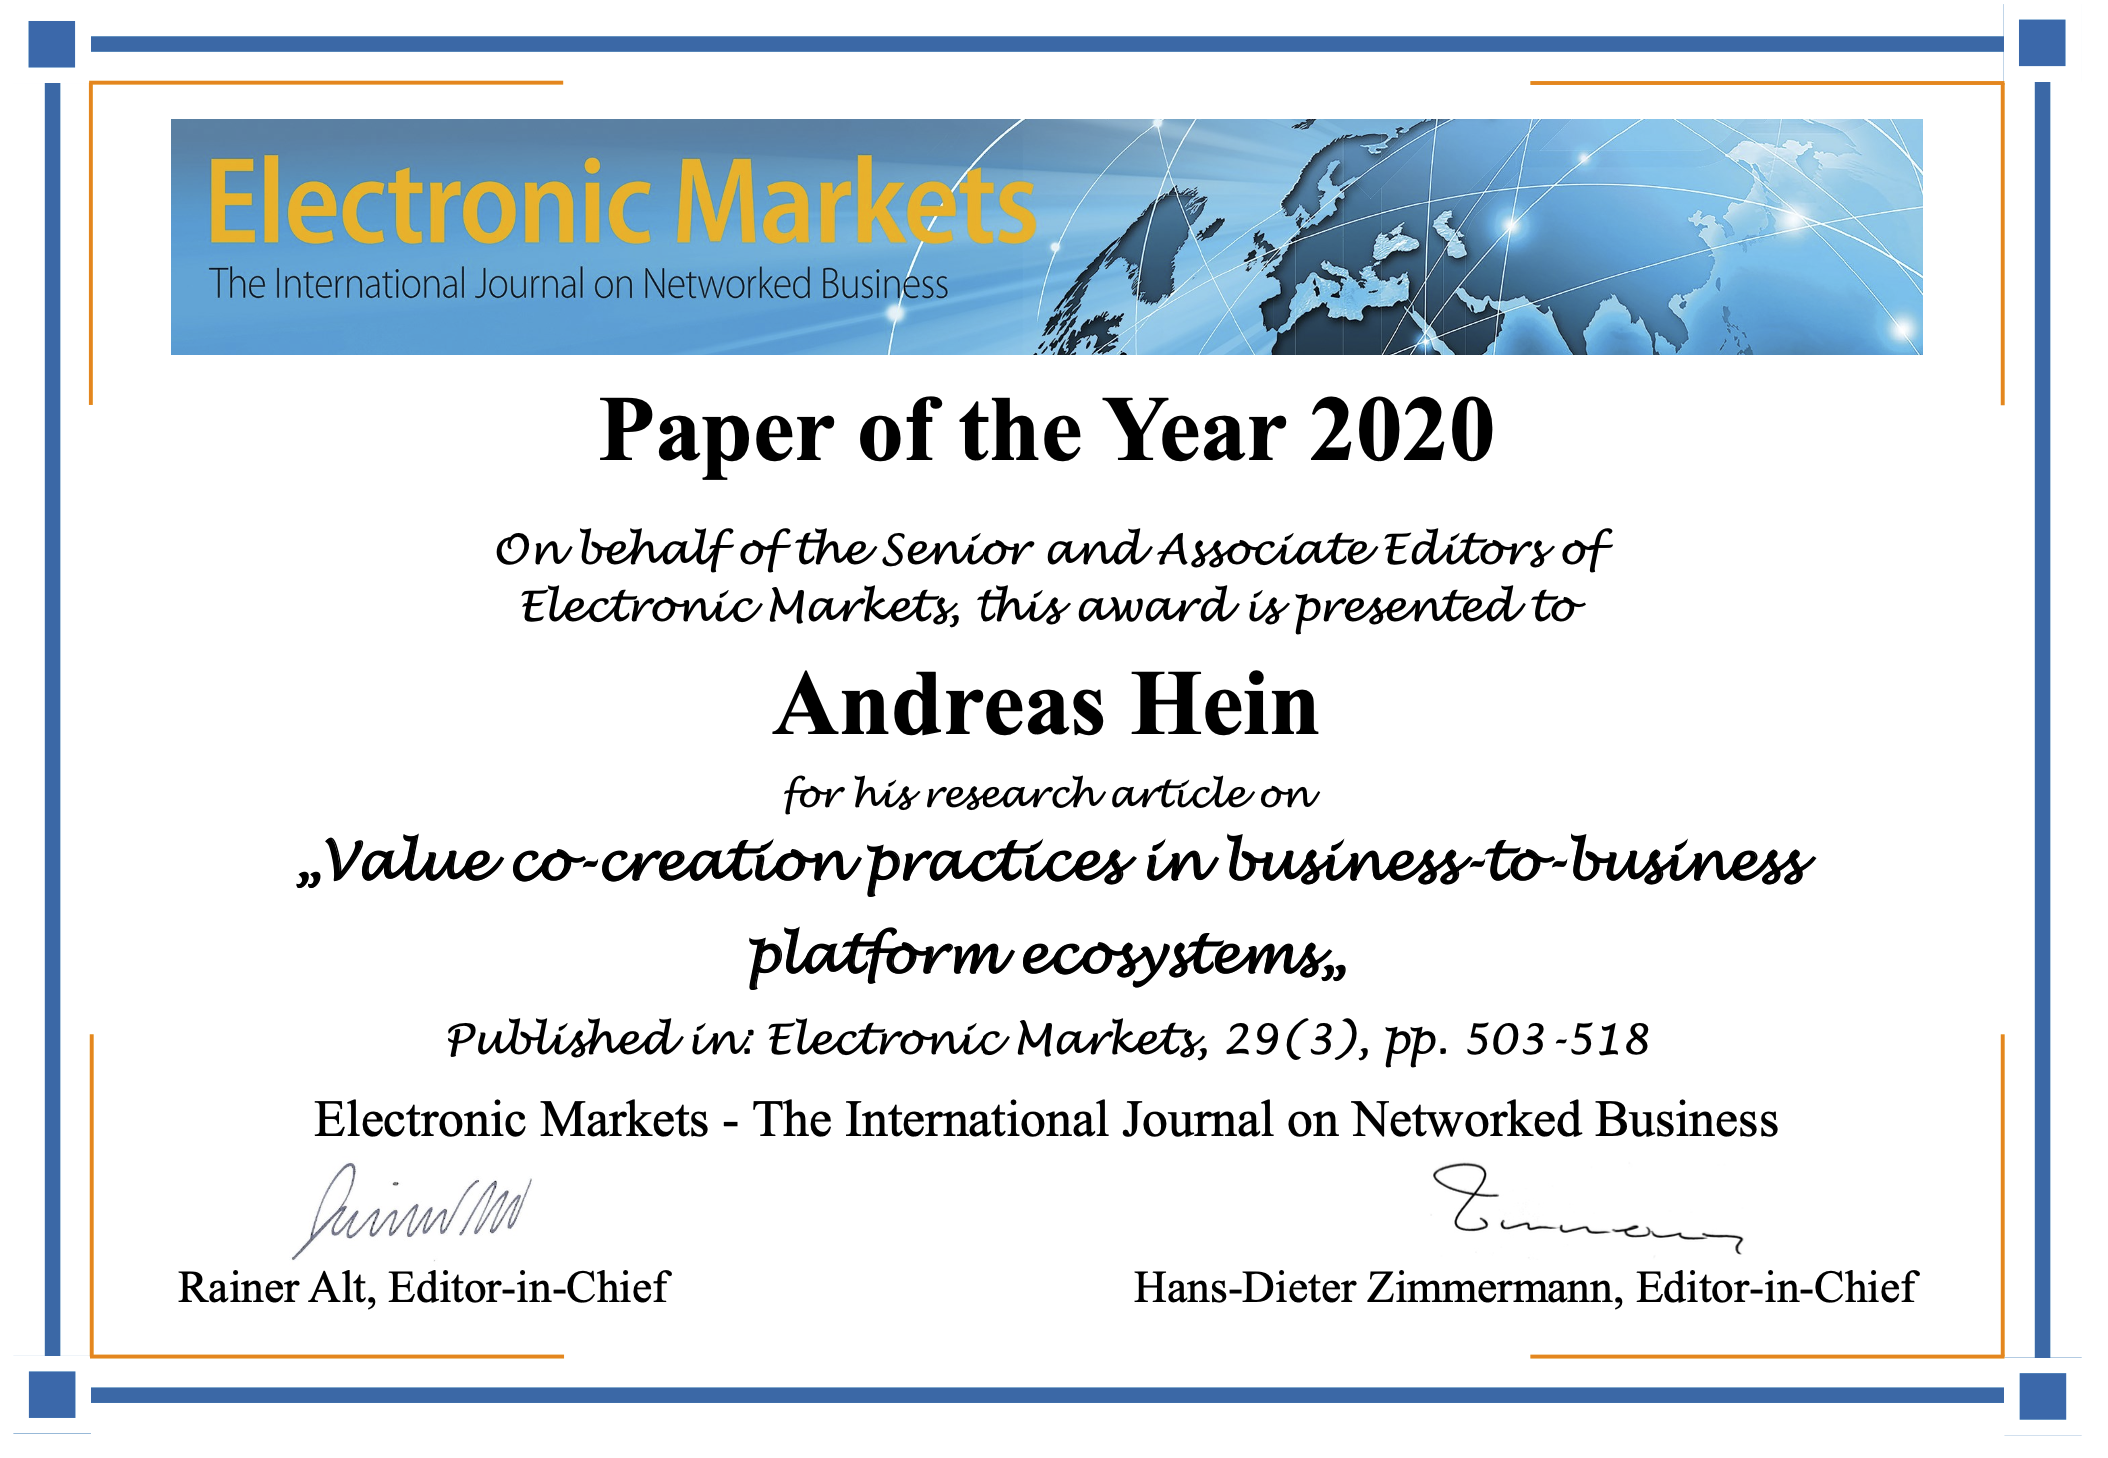 Electronic Markets – Paper of the Year 2020: Value Co-Creation Practices in Business-to-Business Platform Ecosystems